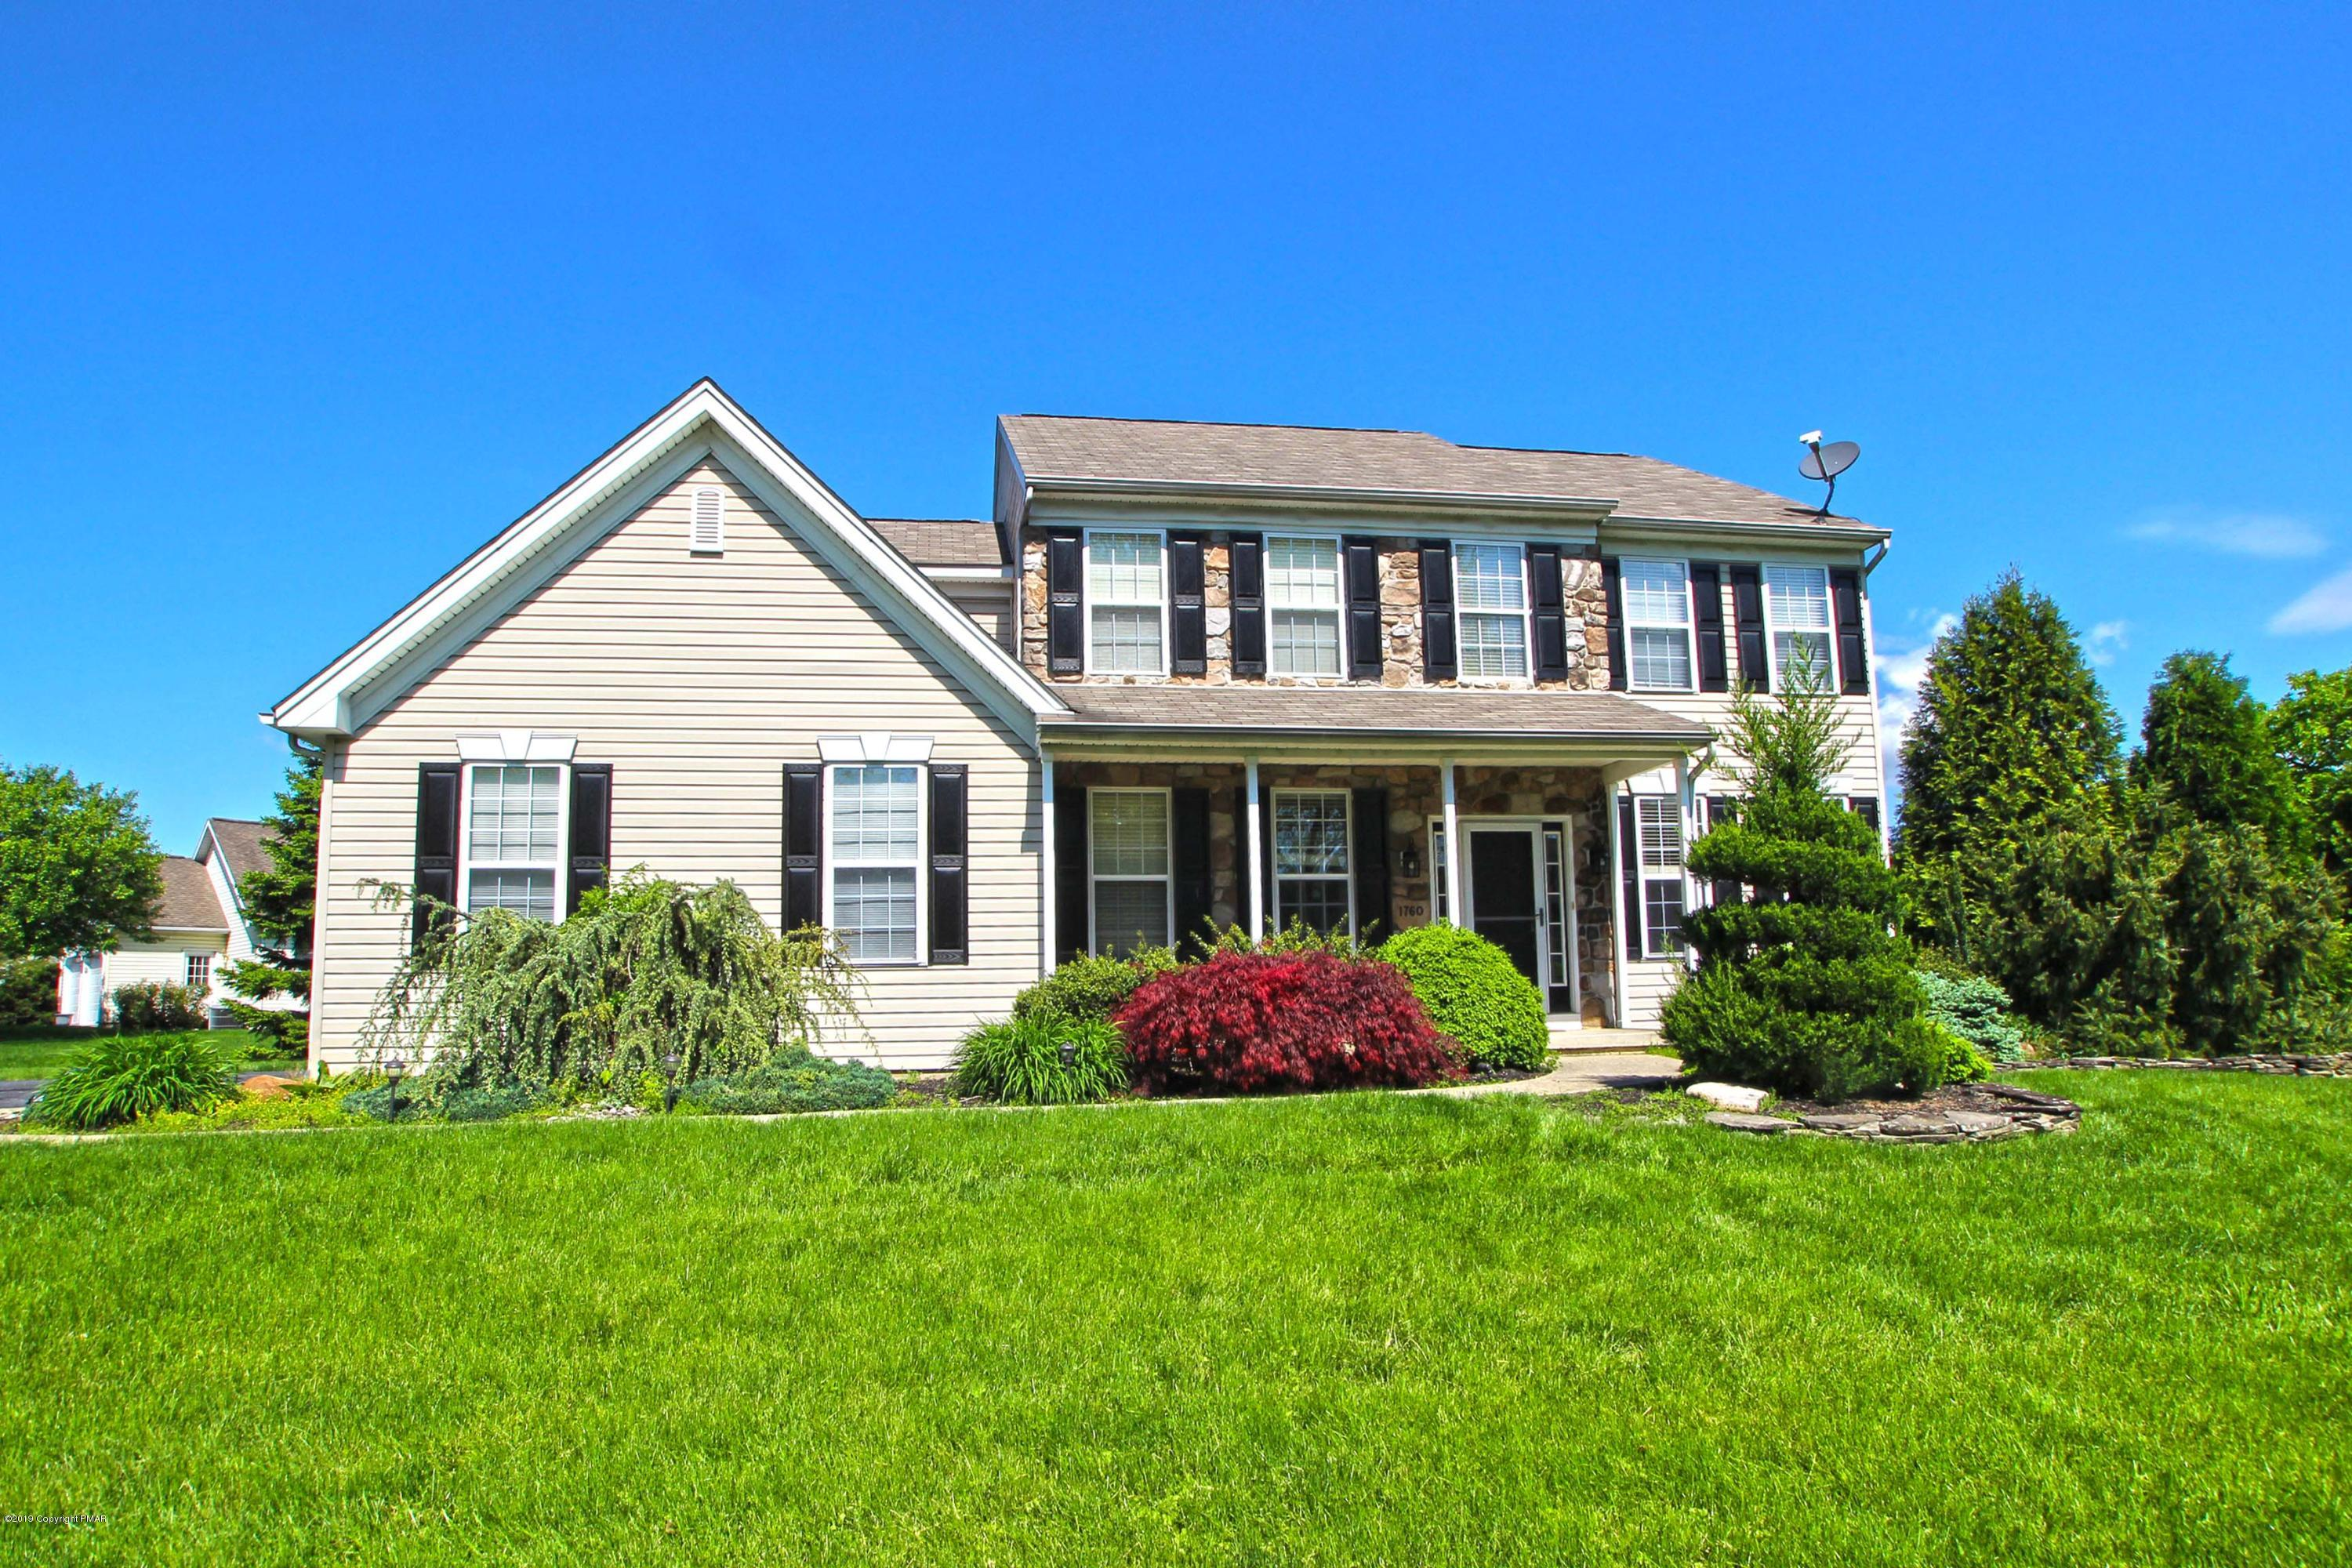 1760 Blossom Hill Rd, Easton, PA 18040